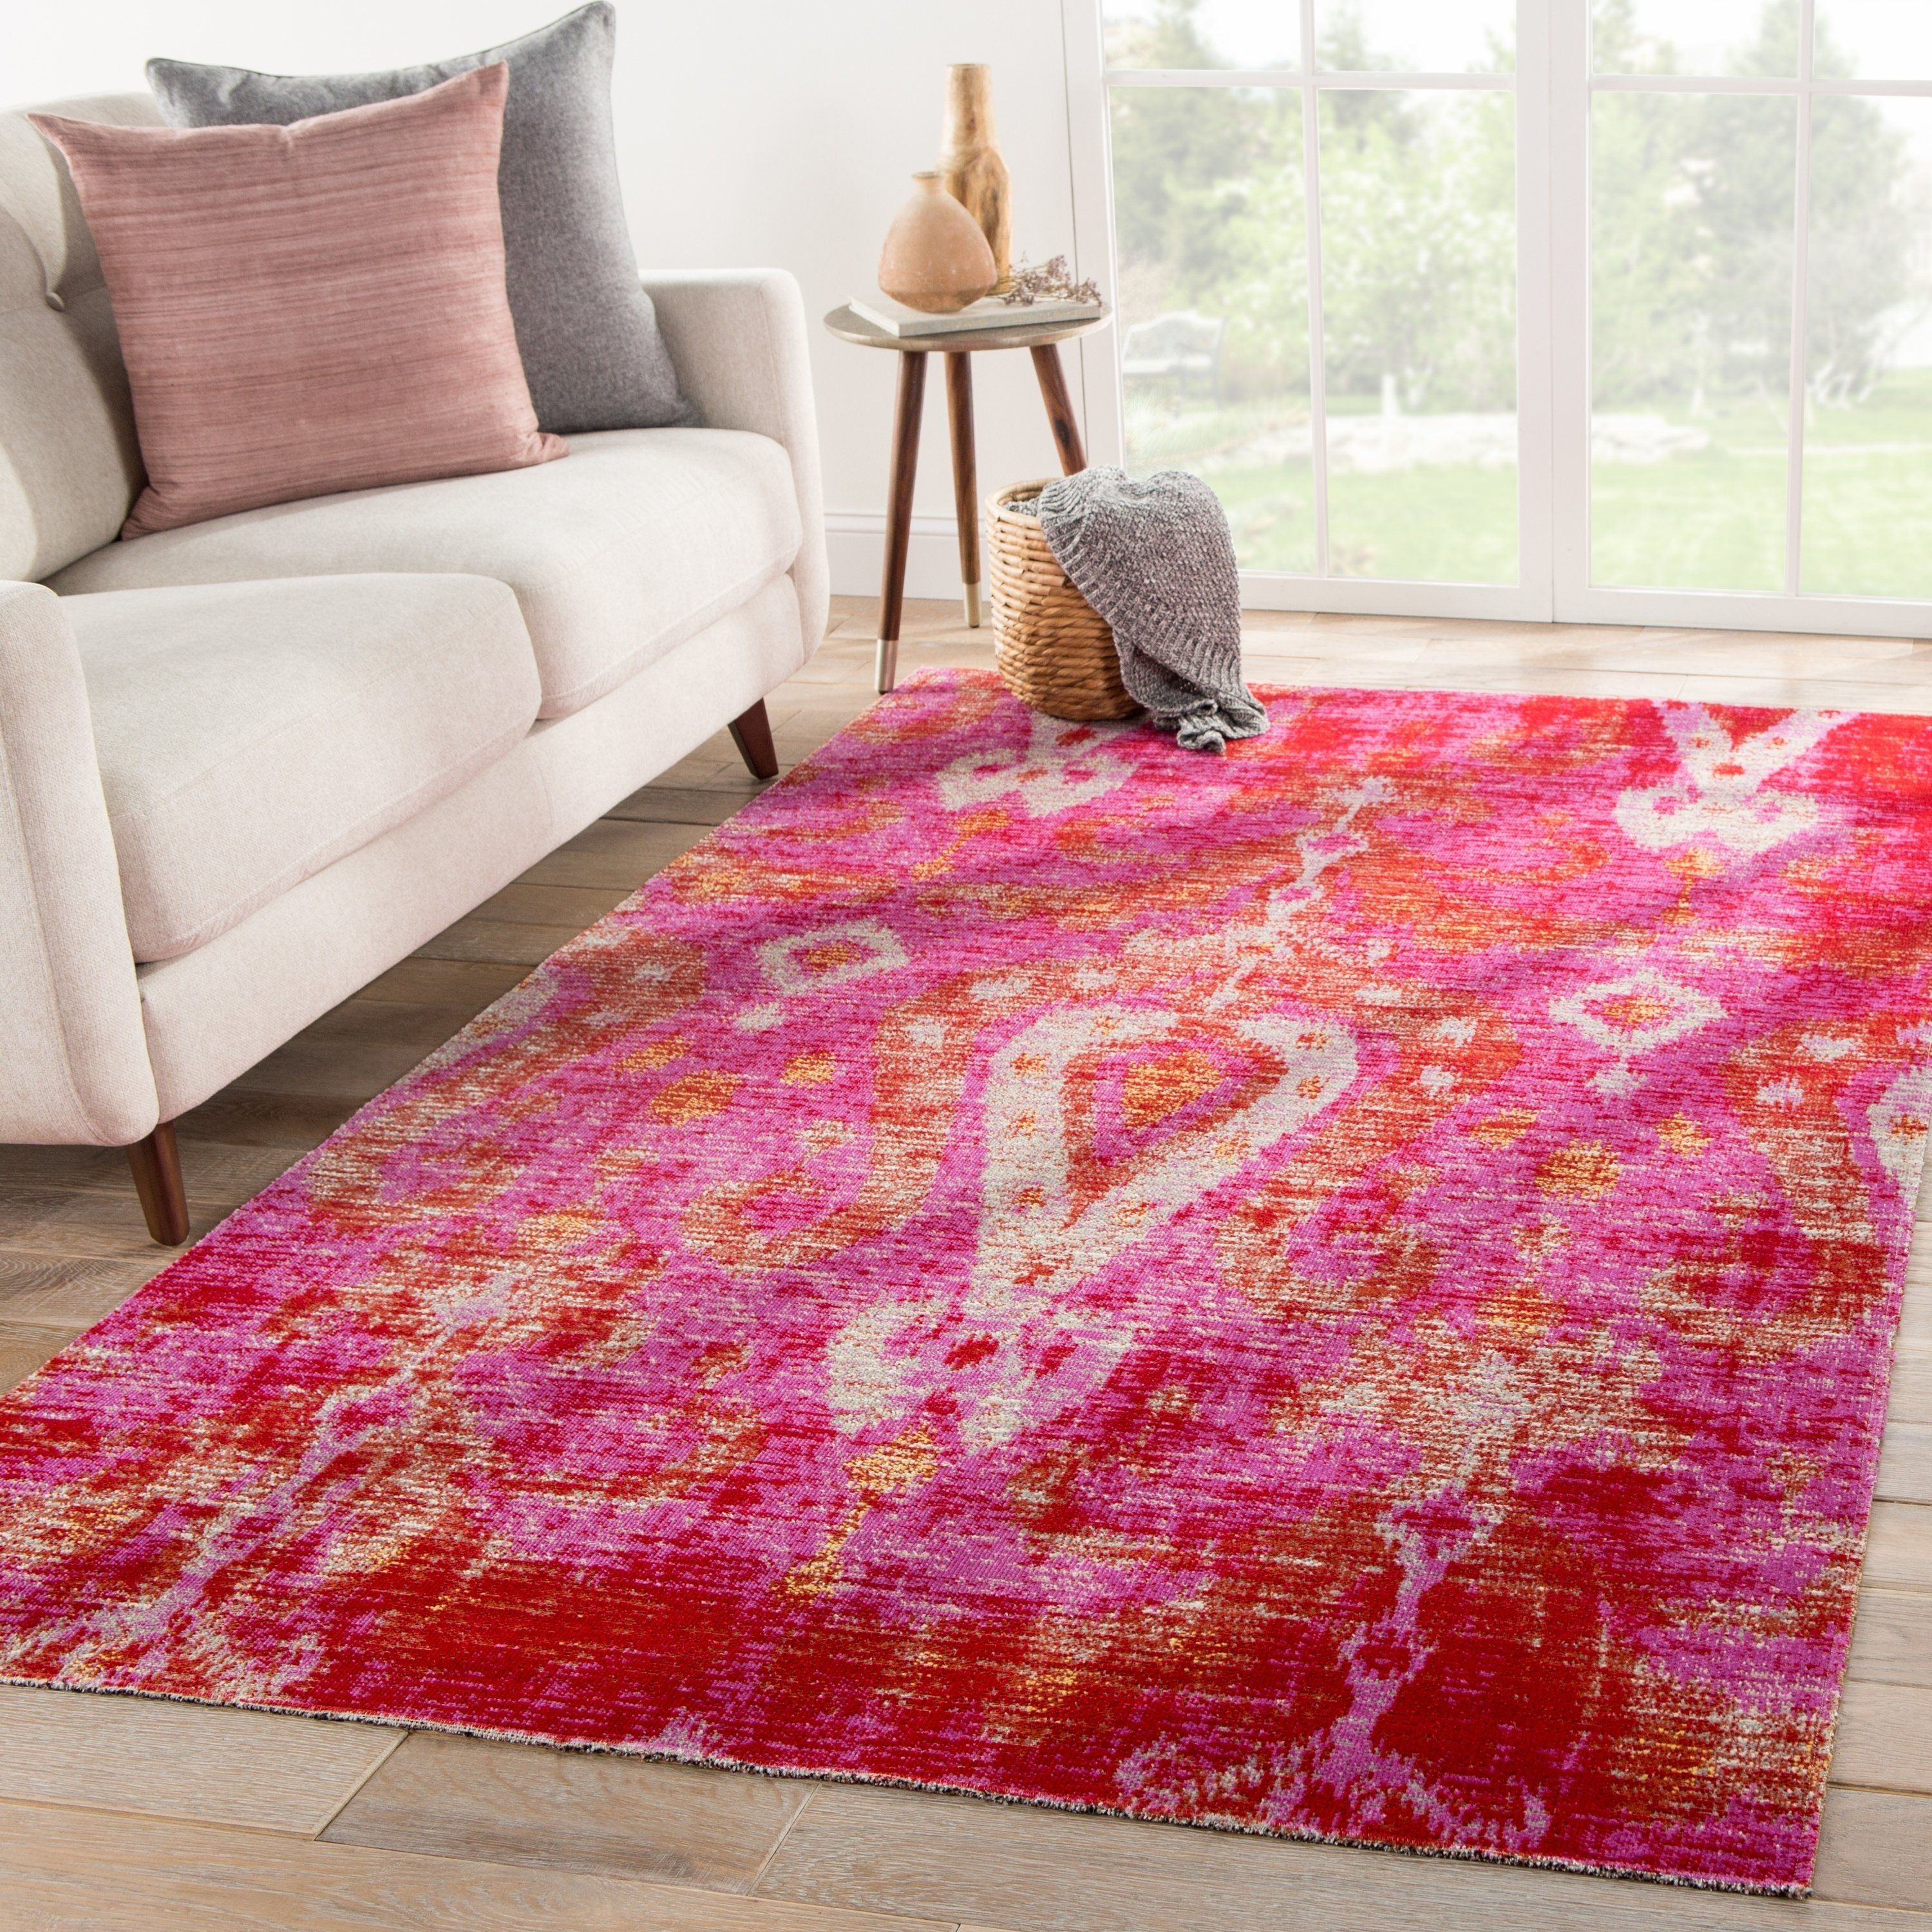 The Curated Nomad Leona Indoor Outdoor Ikat Pink Area Rug